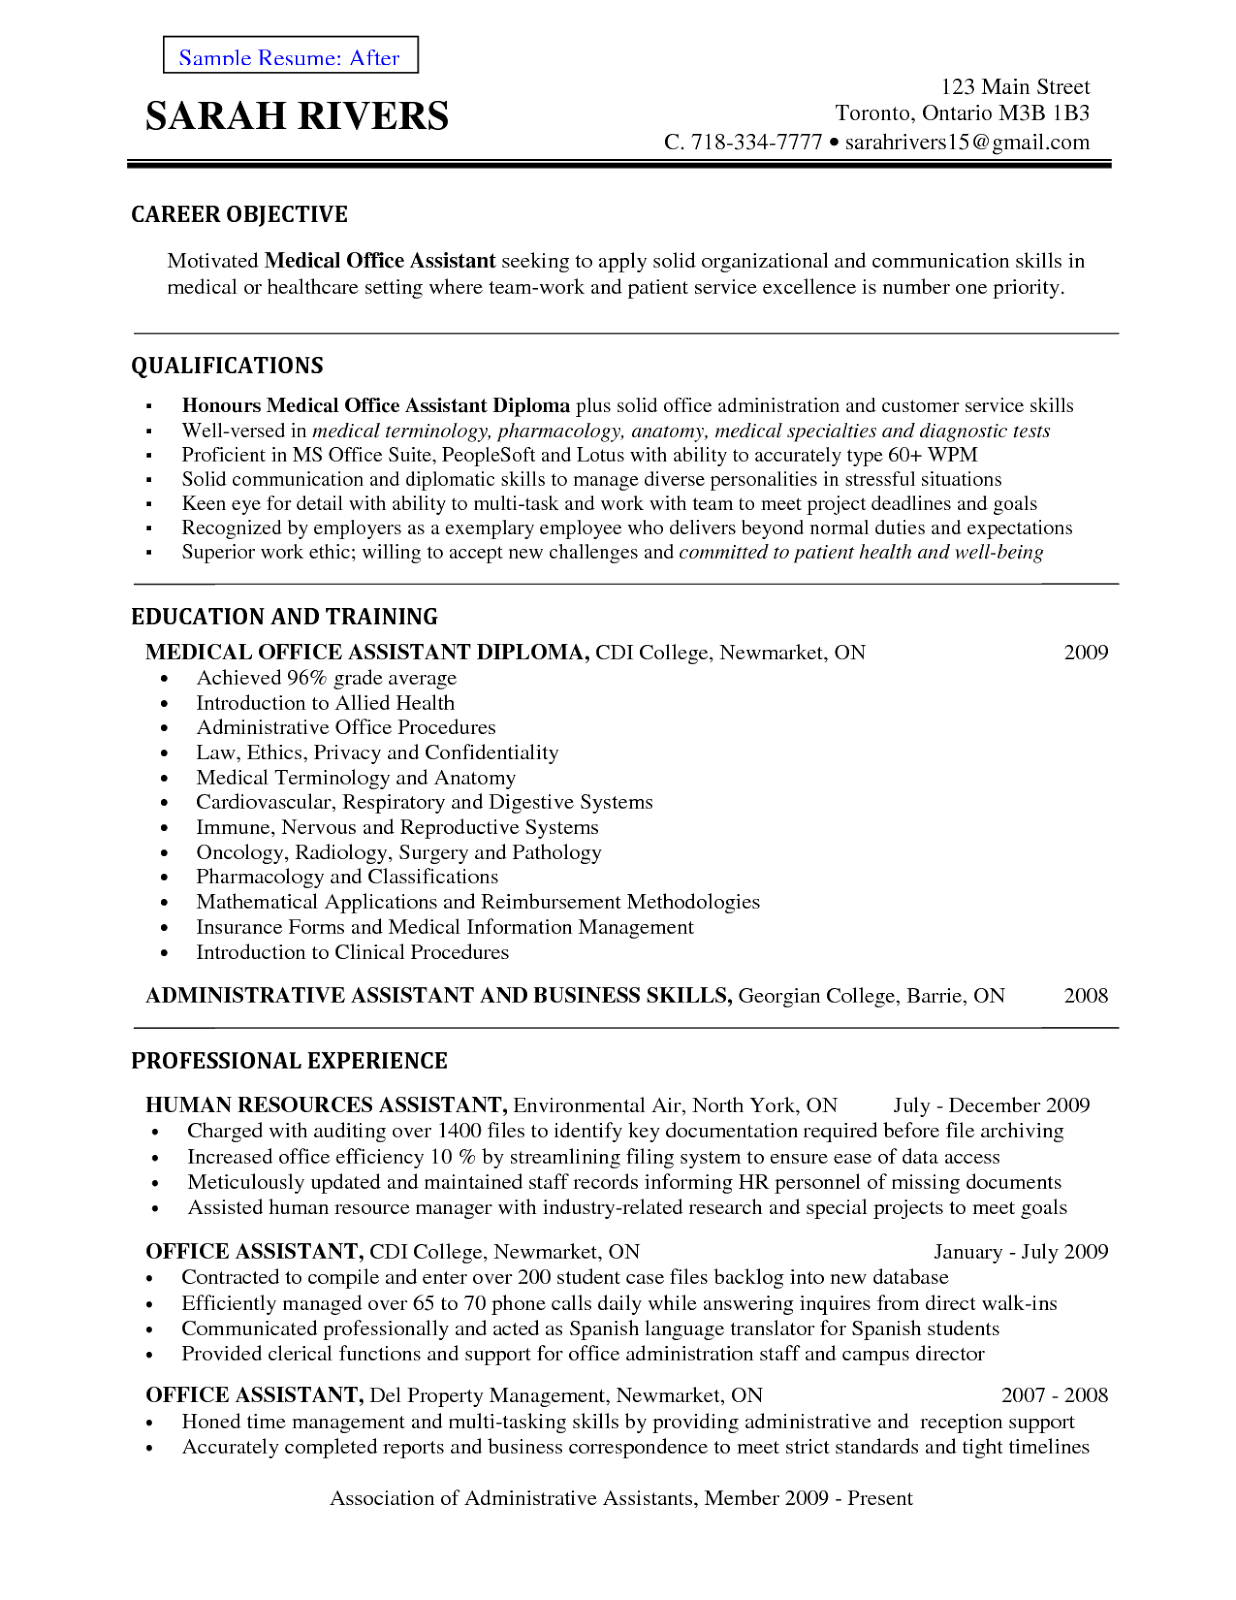 rhodes scholarship resume example templates the science template rhodes scholarship resume example templates scholarship essay examples about career goals essay example millicent rogers museum